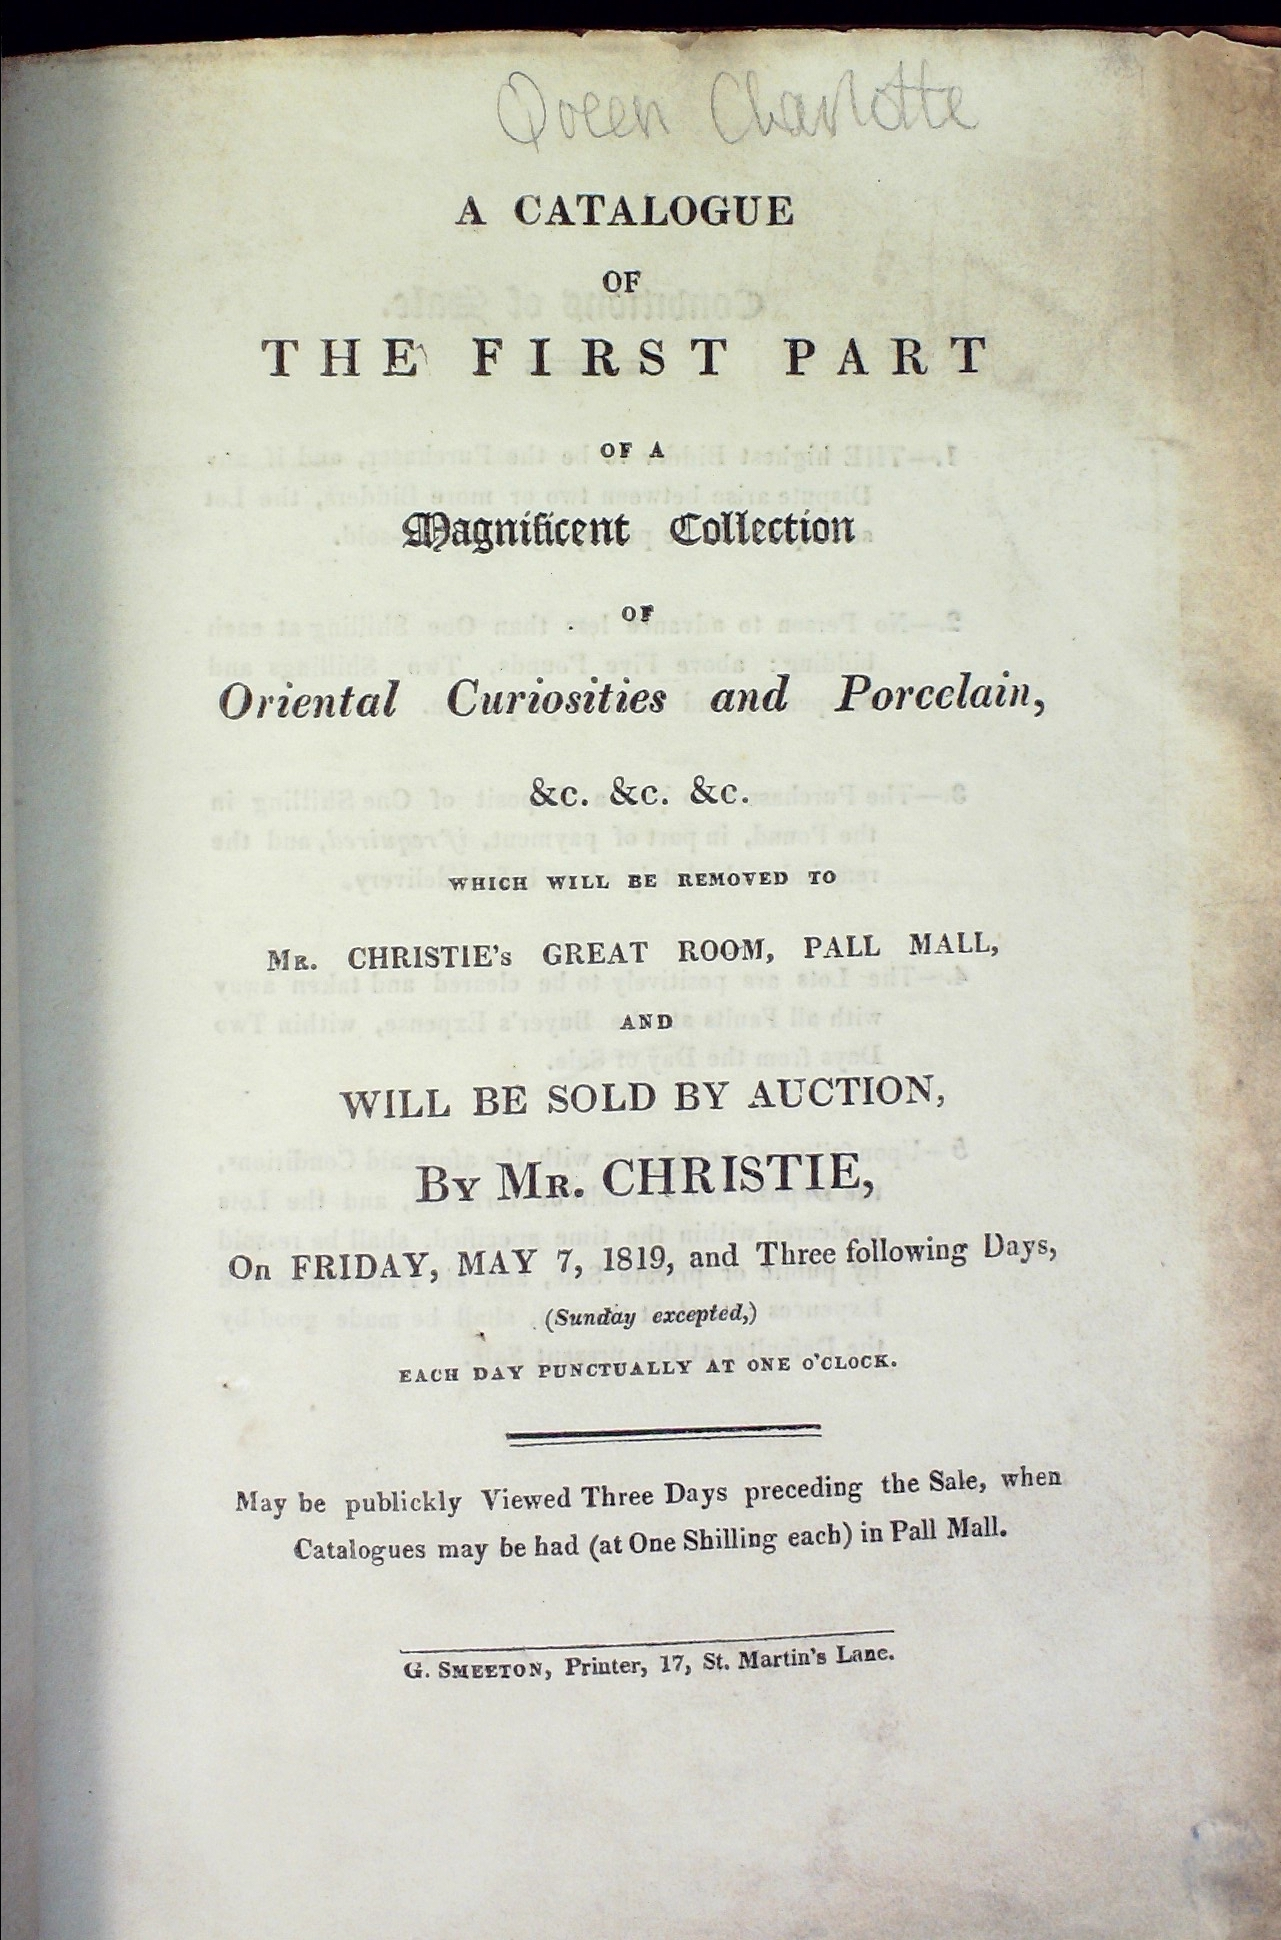 Queen Charlotte 7 May 1819 title page.jpg